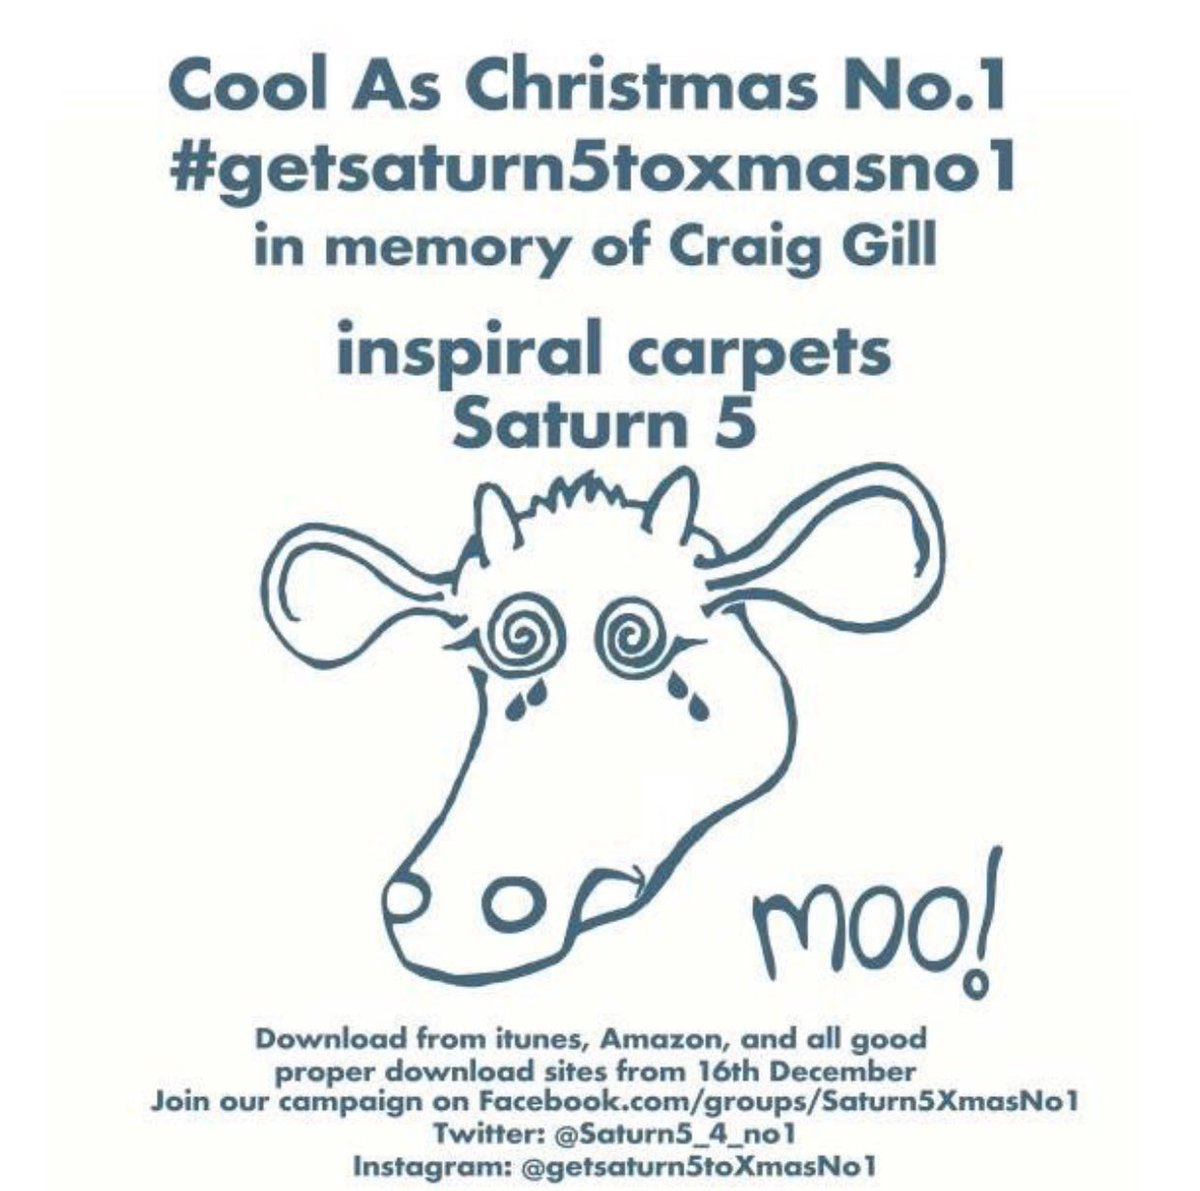 Big love to the @inspiralsband fam from all of us x x https://t.co/1G1TD1jaoY